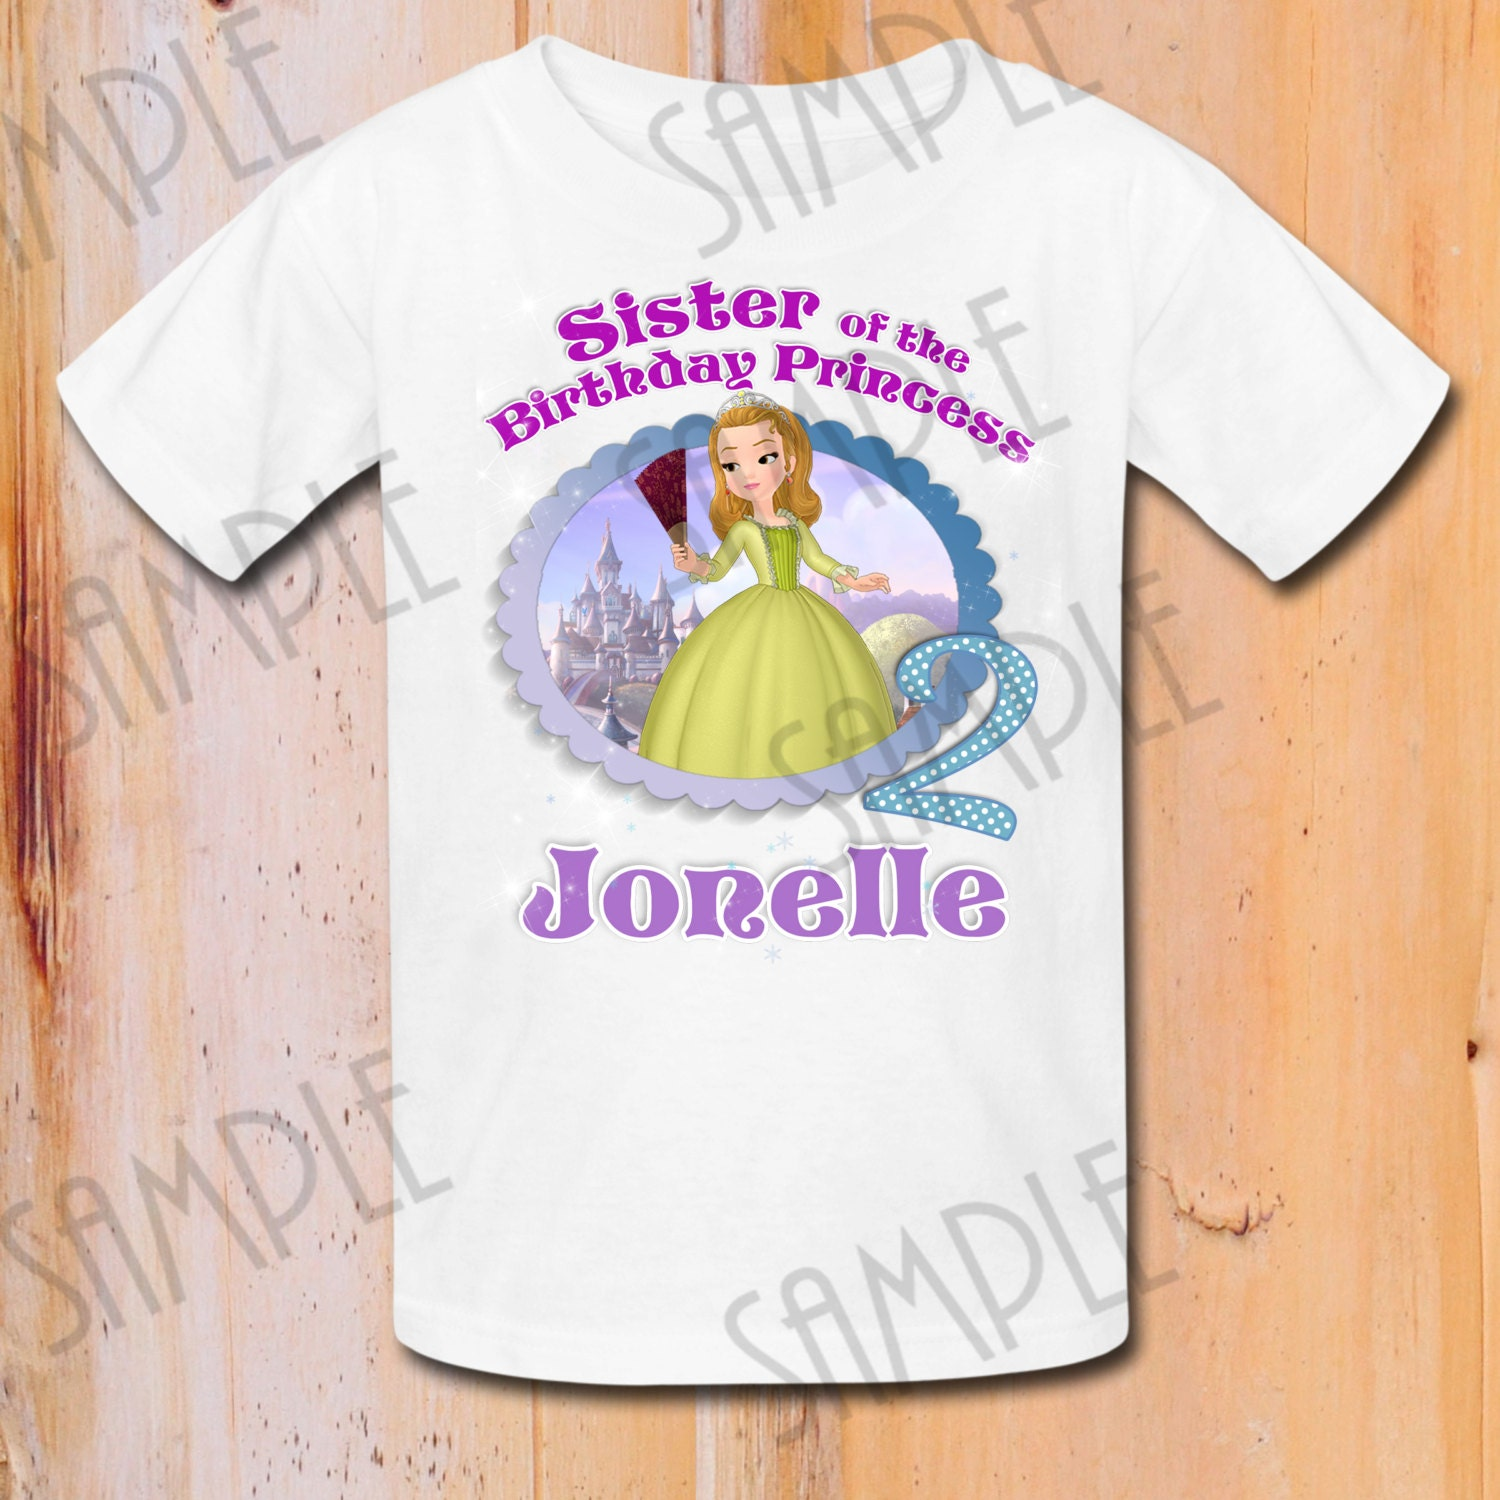 Design your own t-shirt iron on transfer - T Shirt Disney Sofia The First Iron On Transfer Printable Sister Of Birthday Girl Digital Download Customizable Sofia Birthday Party Shirt